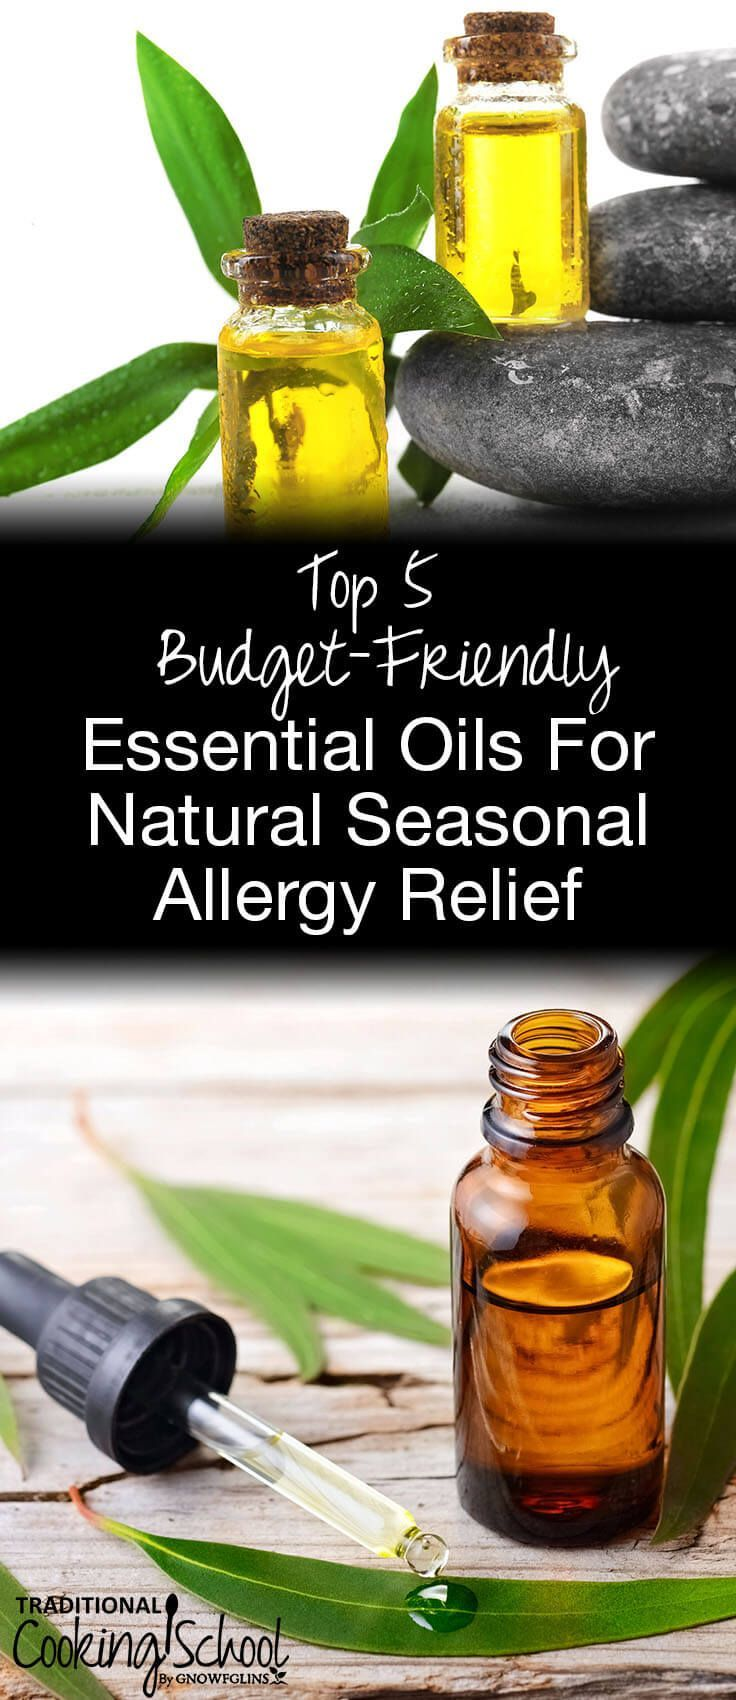 When you need fast relief from allergy symptoms, like that itchy throat, sneezing, and watery eyes, try a more holistic approach instead of an inexpensive and unnatural over-the-counter medicine. Here are 5 potent yet budget-friendly essential oils for natural seasonal allergy relief! #tradcookschool #essentialoilsforallergies #naturalremedies #essentialoils